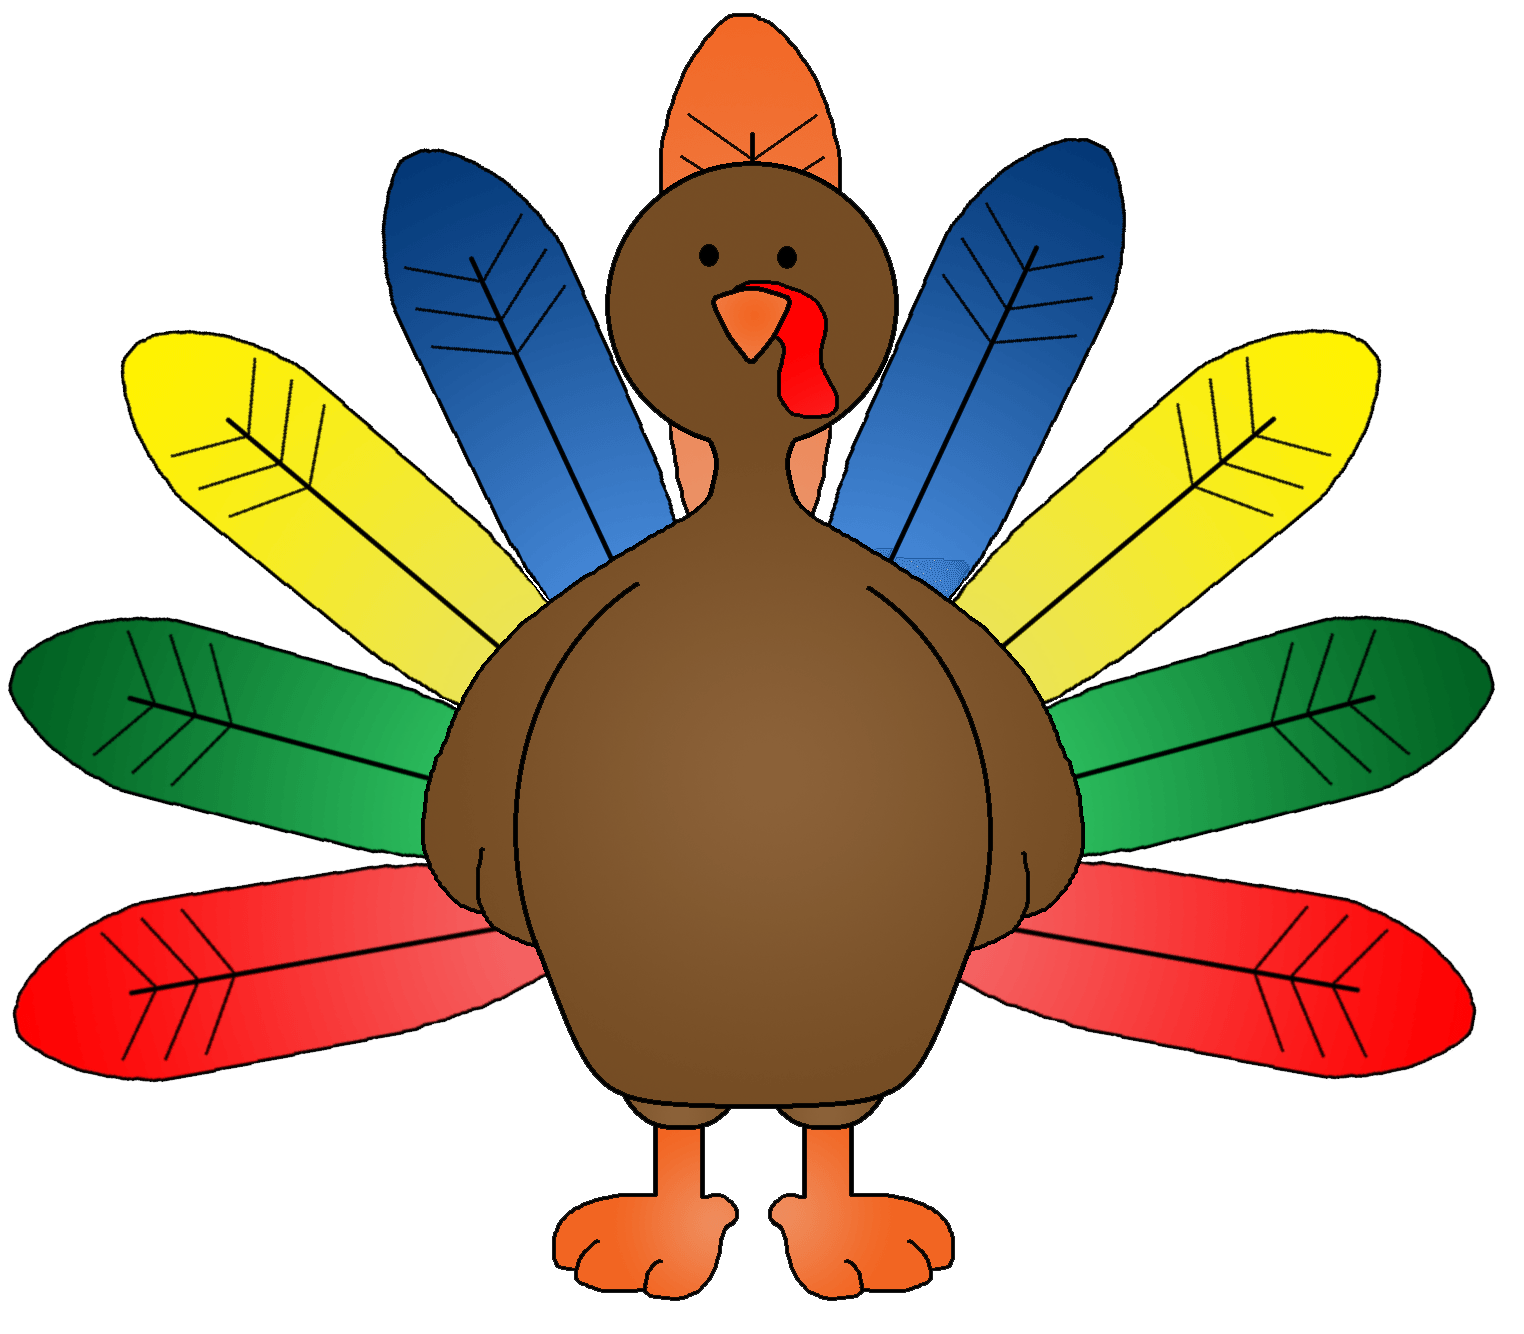 Happy thanksgiving graphics pictures. Feast clipart grateful